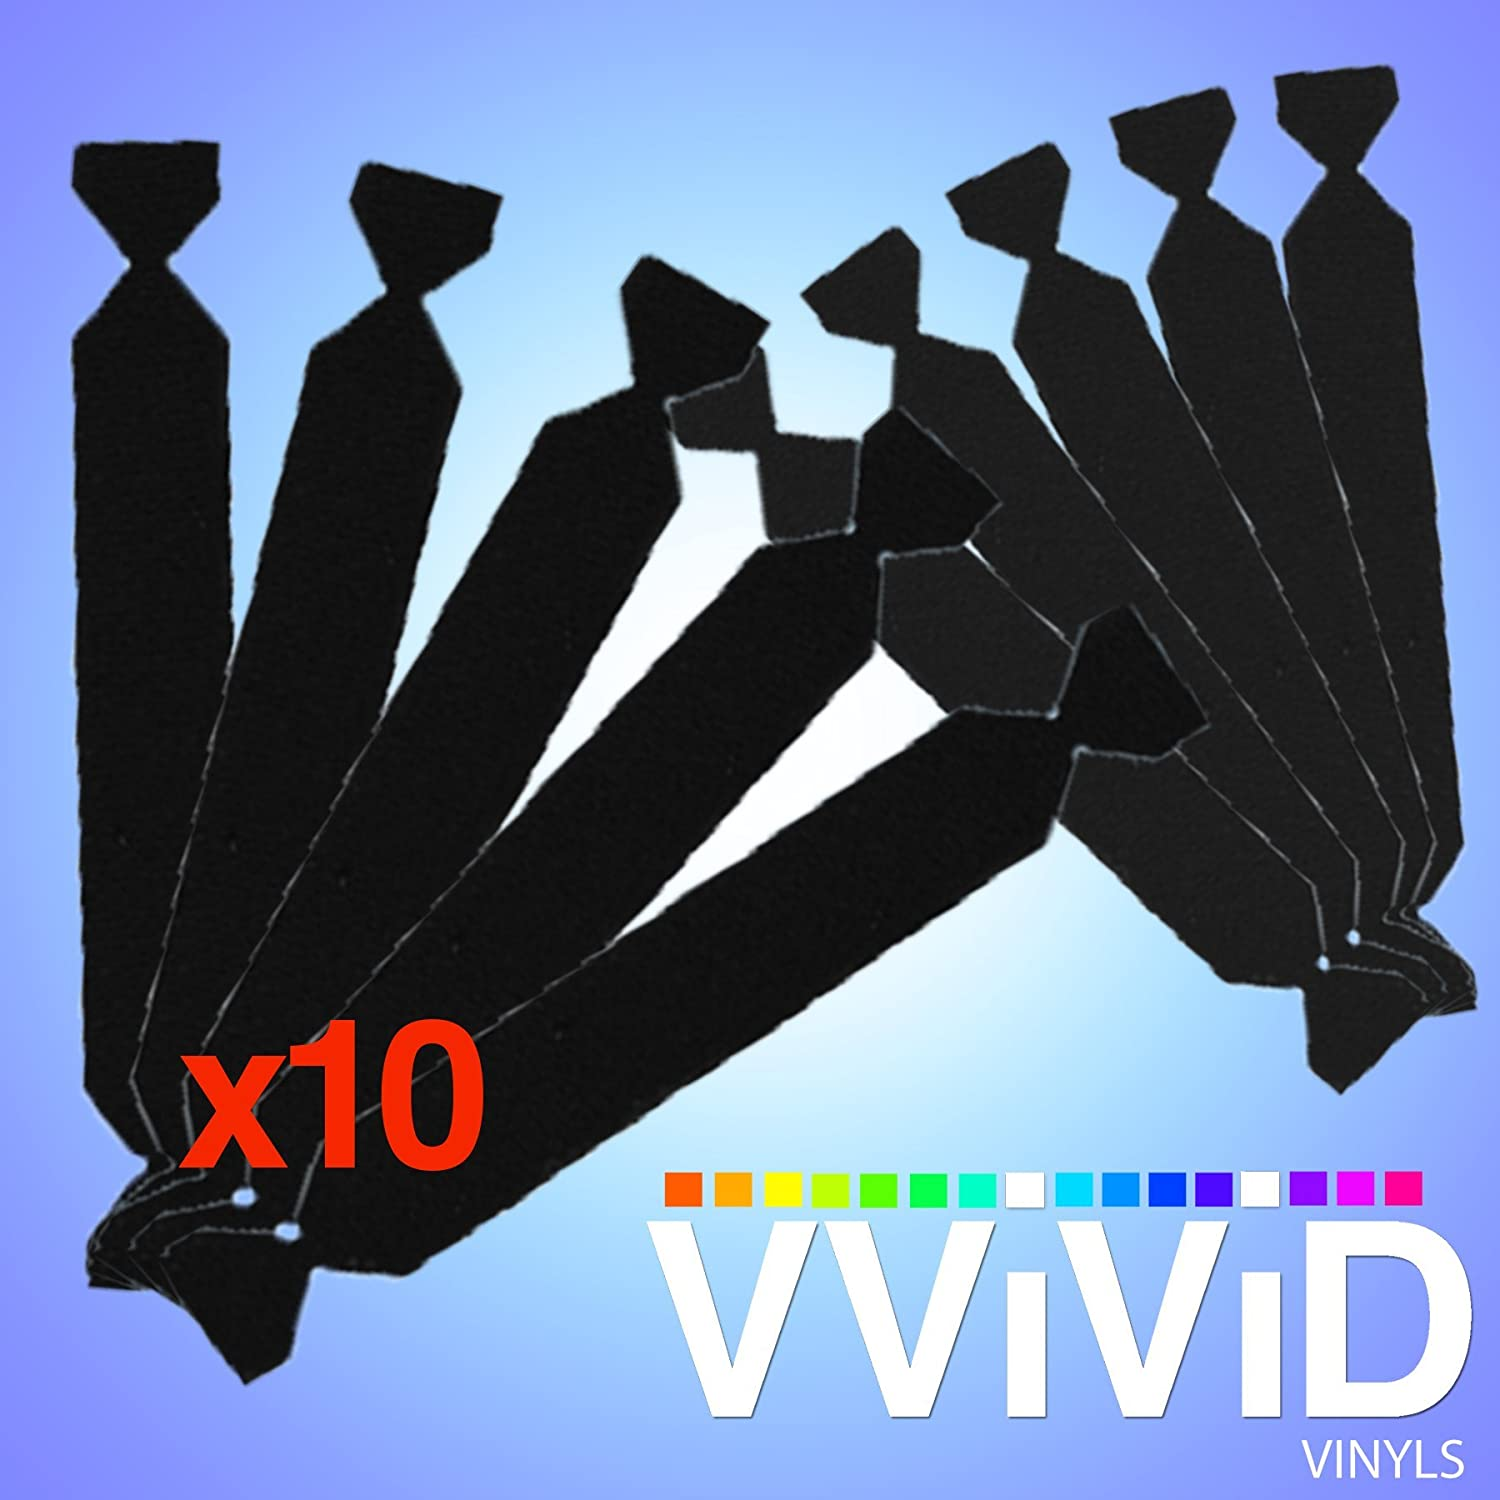 VViViD Replaceable Black Felt Decal 10-Pack Vinyl Car Wrap Tool Scratch-Proof Adhesive for 3M Squeegee